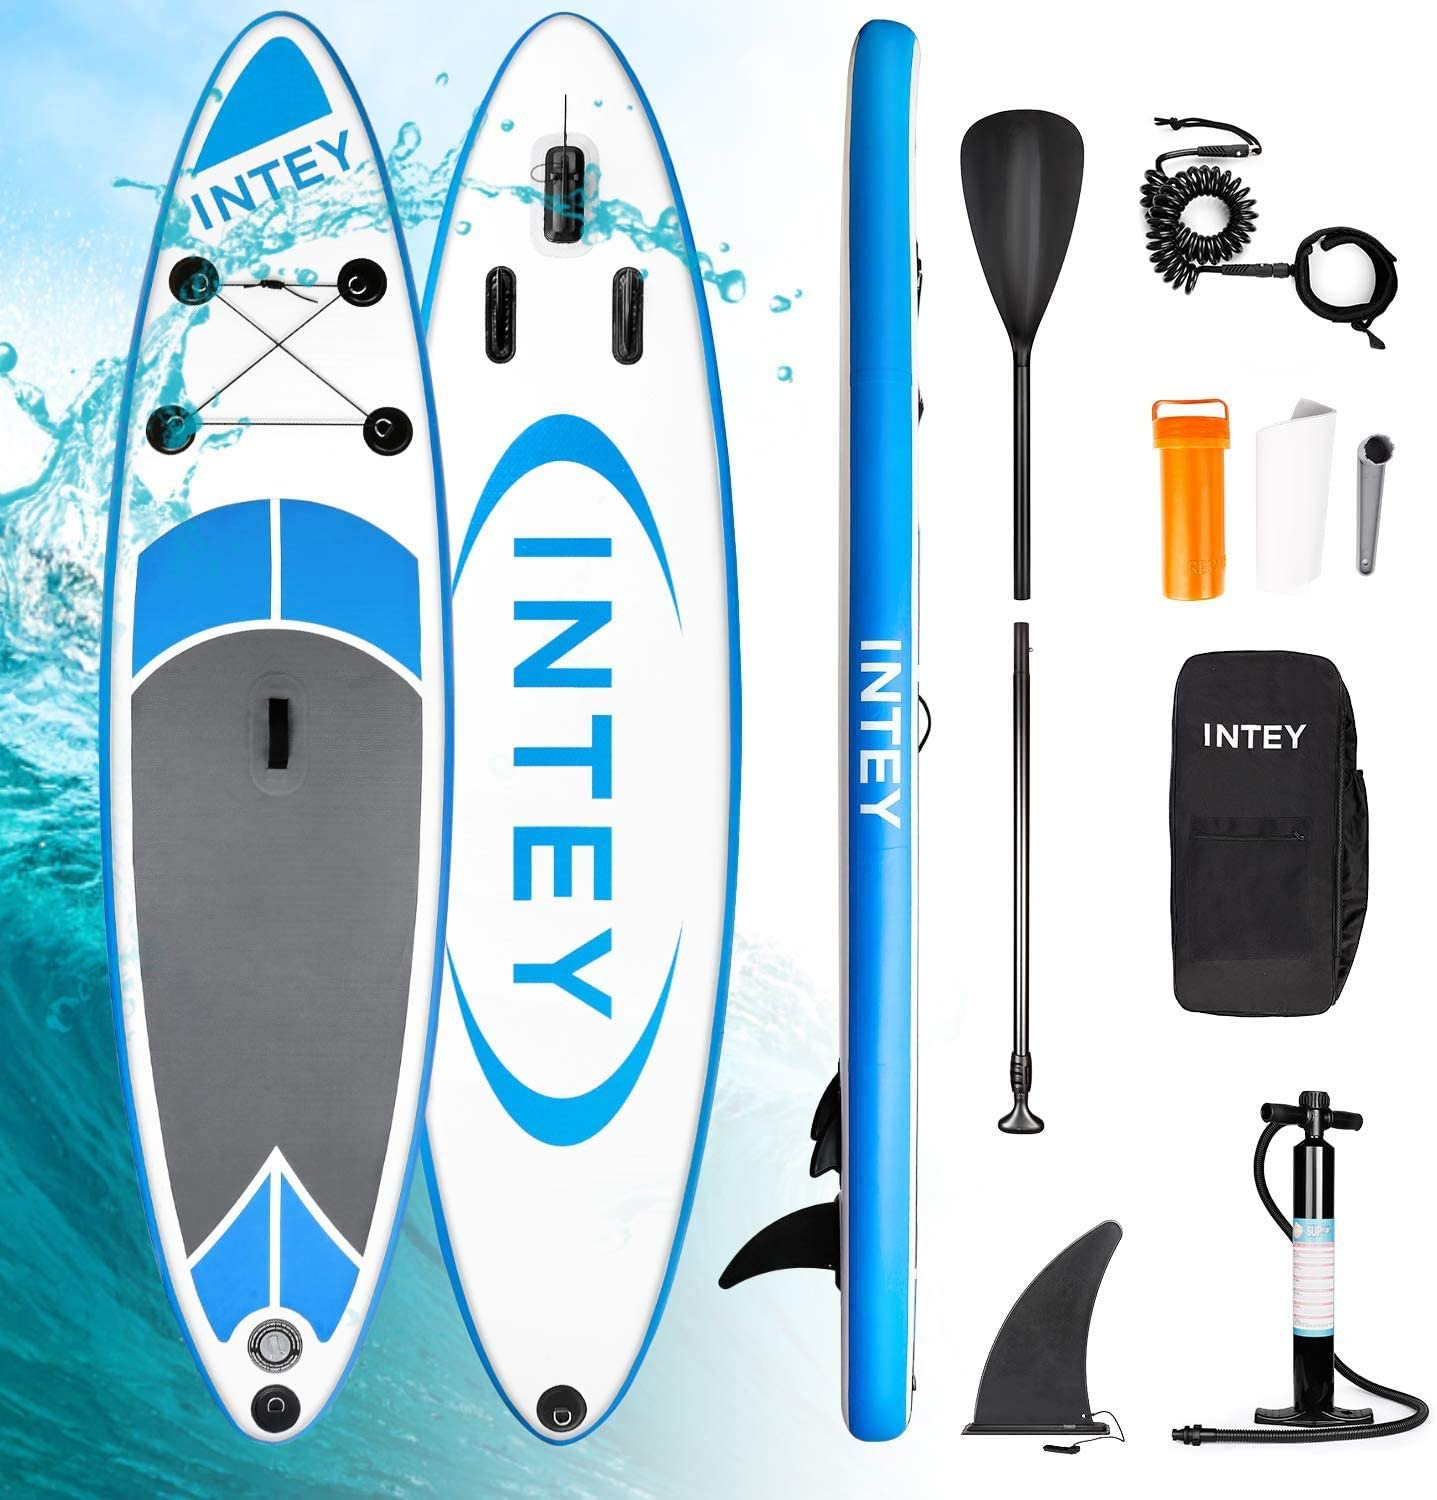 Tabla de paddle surf barata Intey